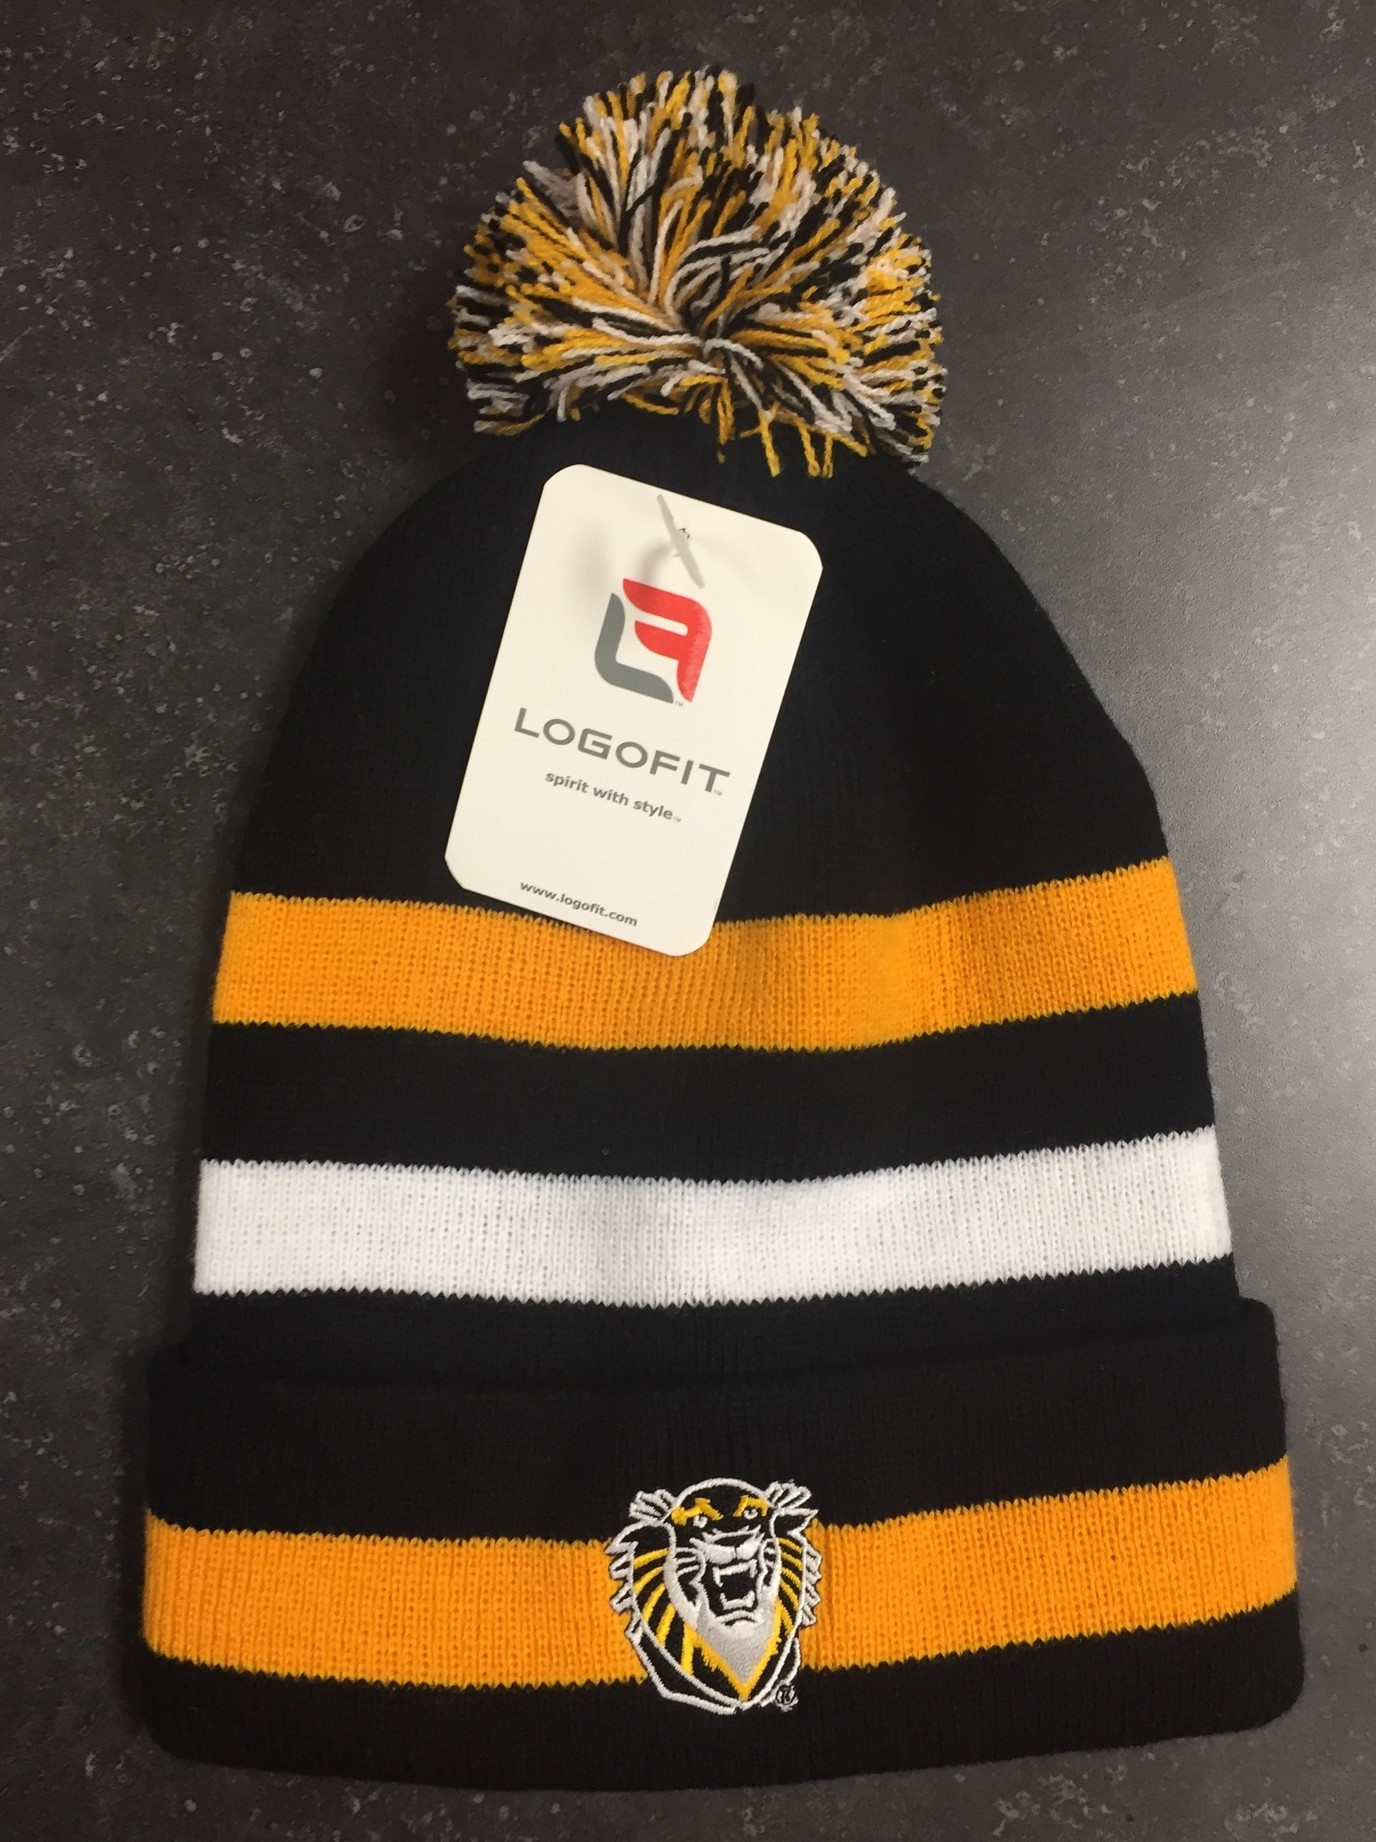 Image for the Knit Cuffed Hat with Pom, Black/Gold/White, 4109, 6/80, OSFM, product